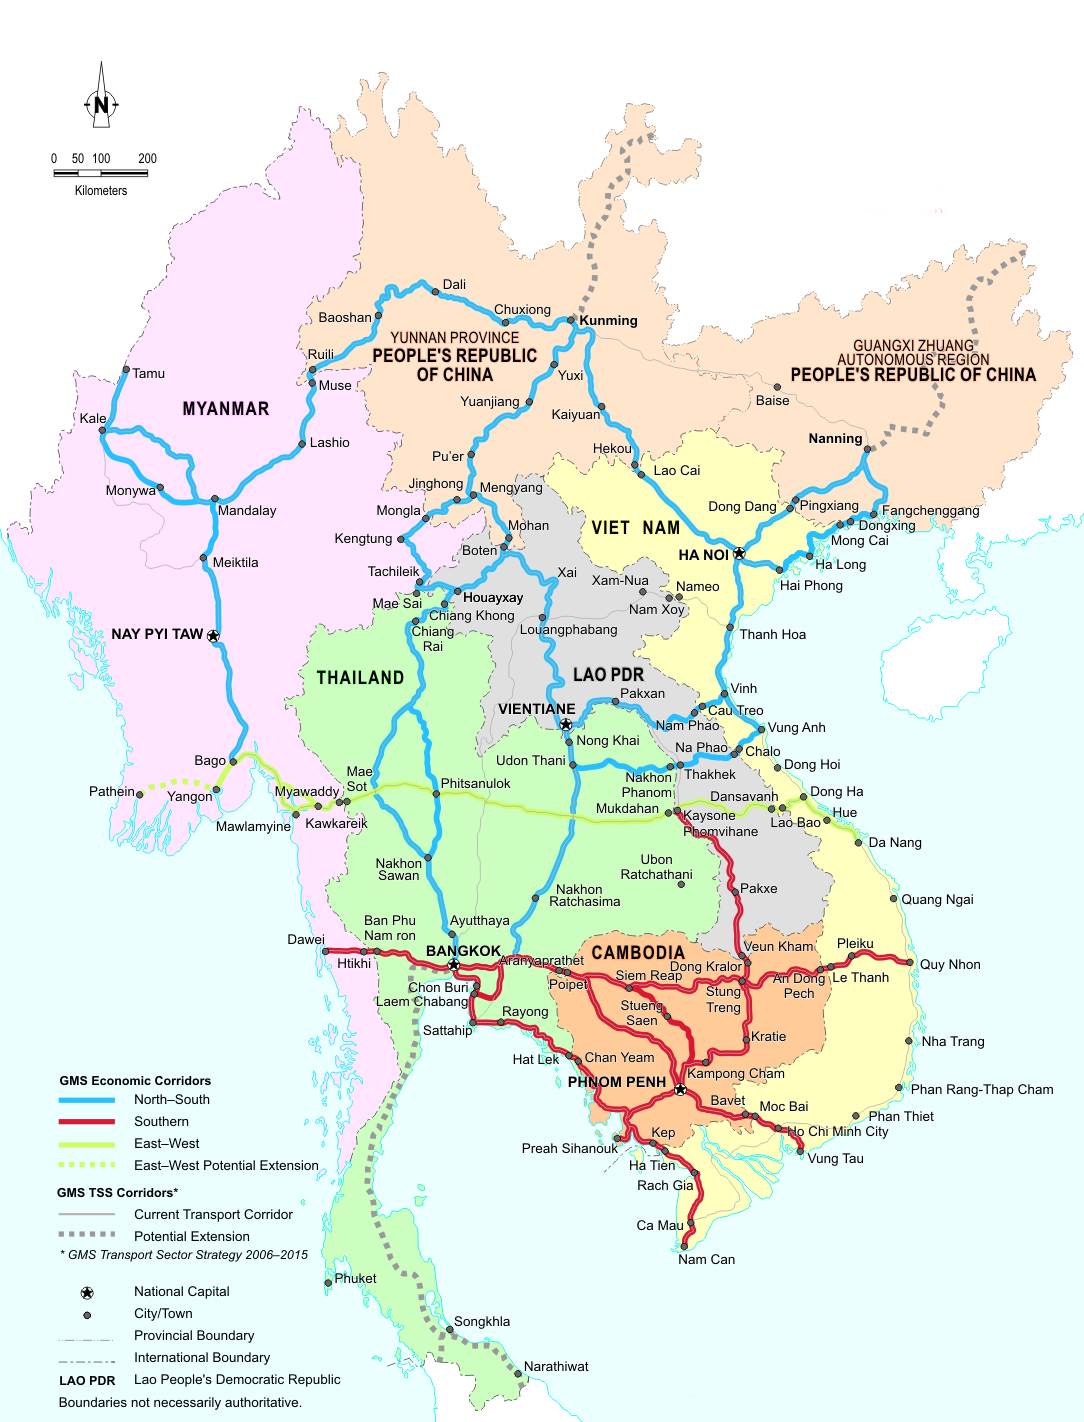 Map Of Asia North South East West.Economic Corridors In The Greater Mekong Subregion Greater Mekong